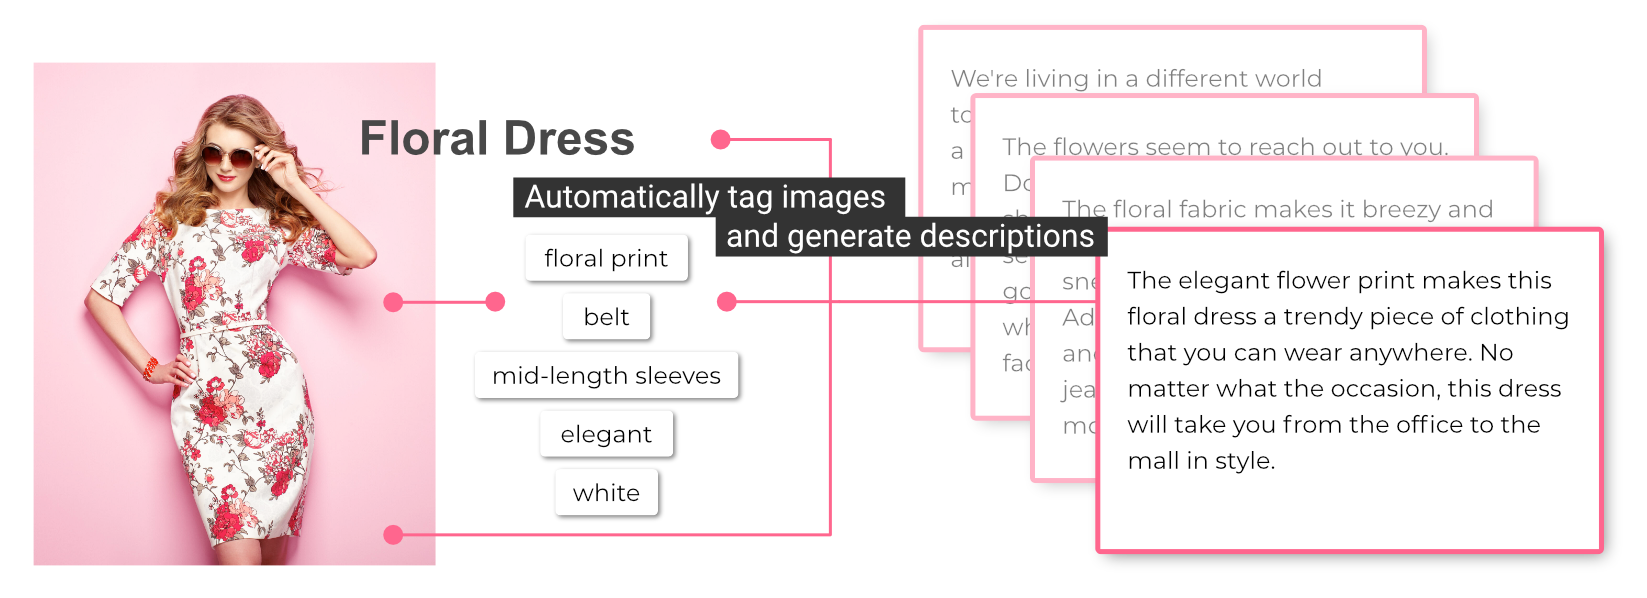 Hypotenuse AI wants to take the strain out of copywriting for e-commerce